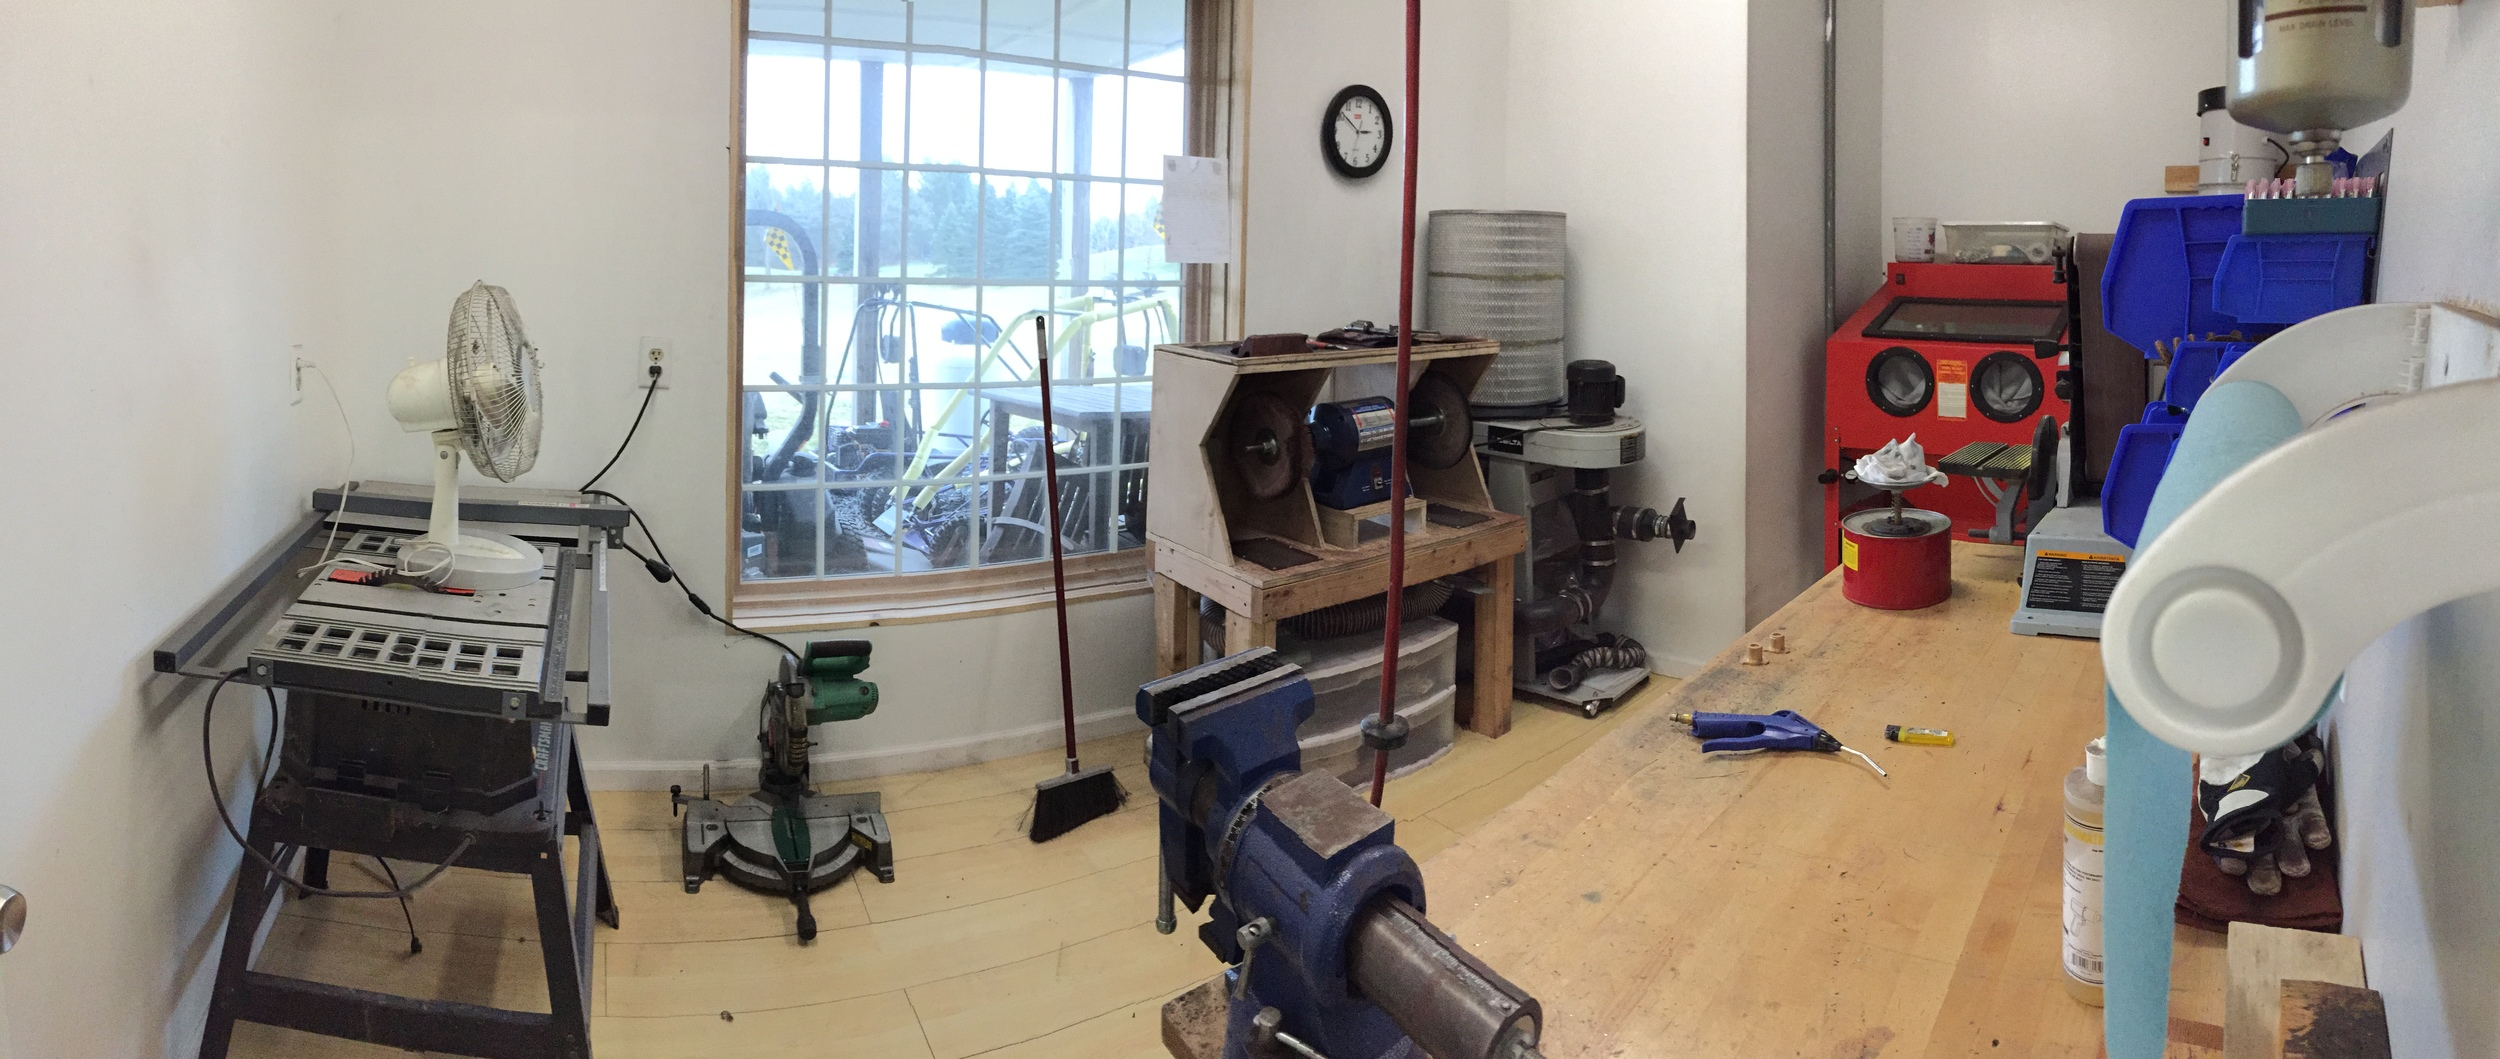 A pano showing the dust room. I pack a lot of tools into this room. It's worth having these mess generators within their own room to keep the rest of the shop clean.